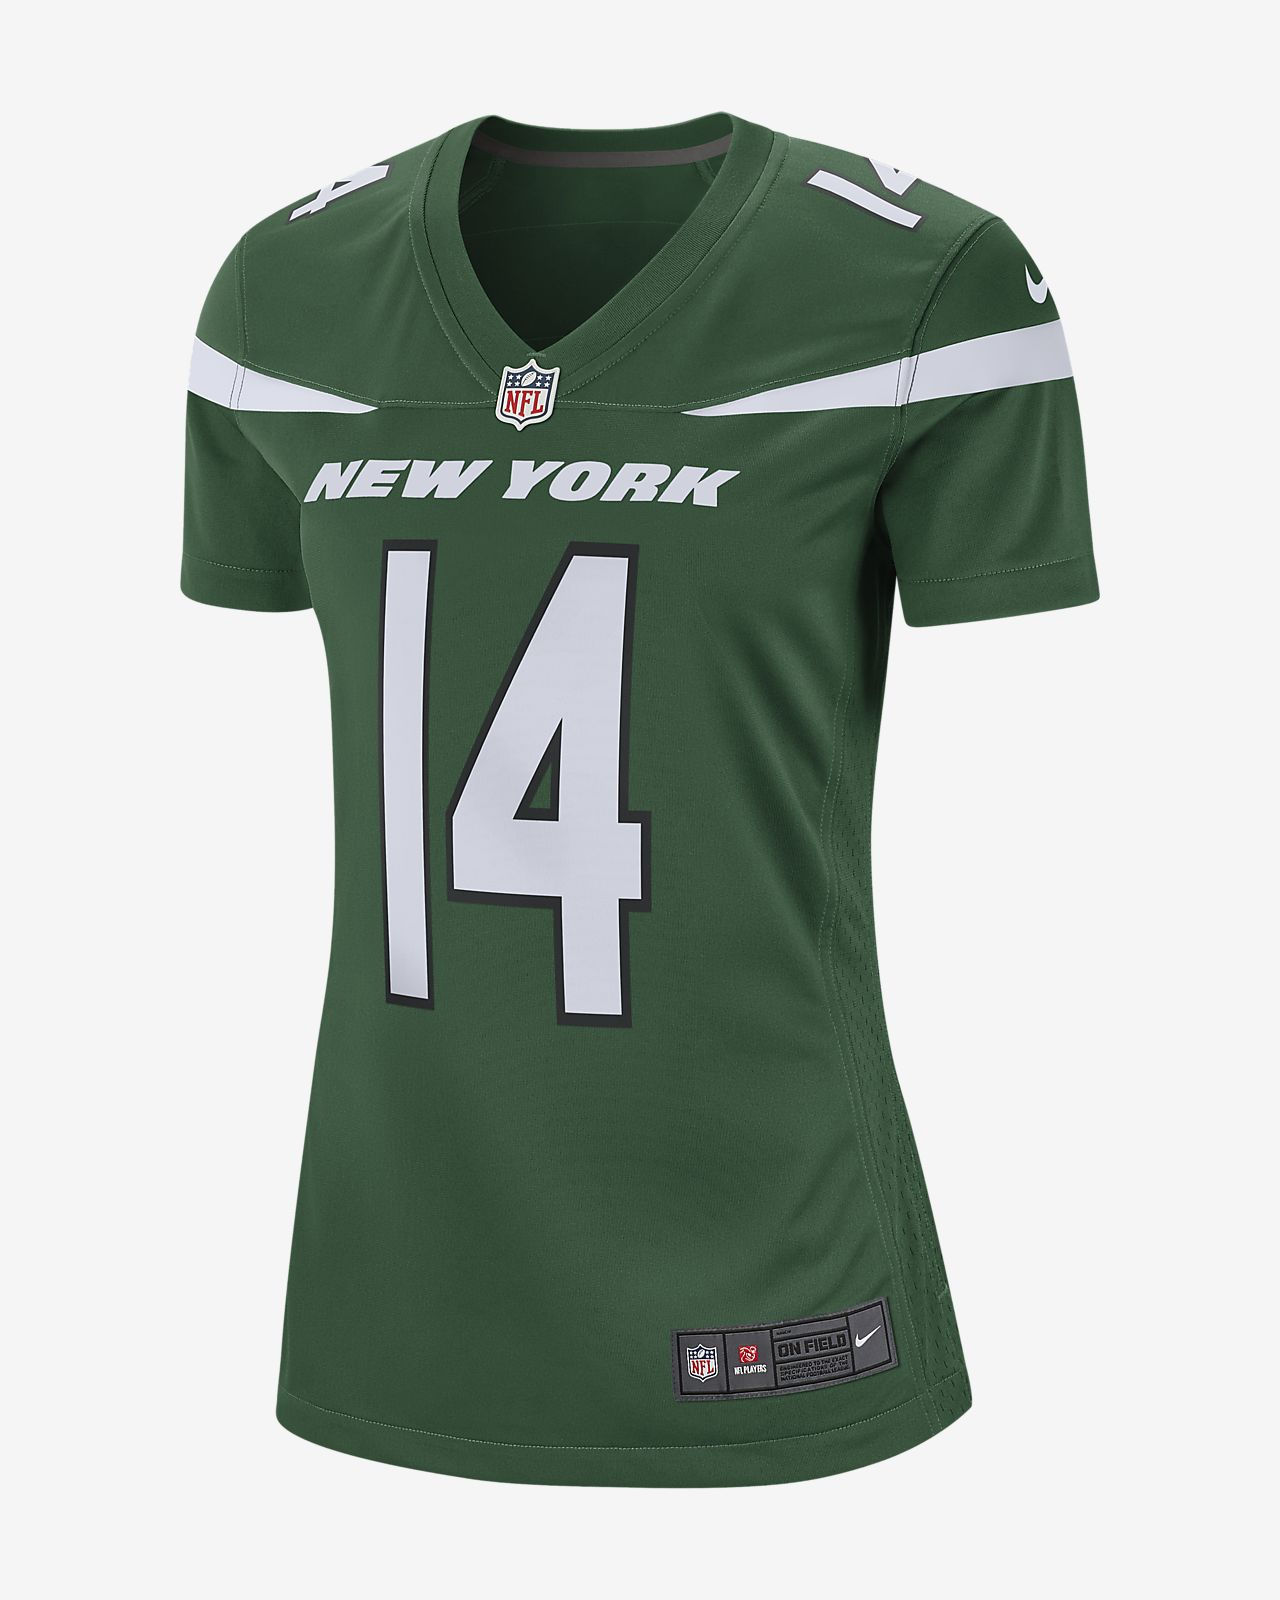 on sale 29b4b 28ea8 NFL New York Jets (Sam Darnold) Women's Game Football Jersey